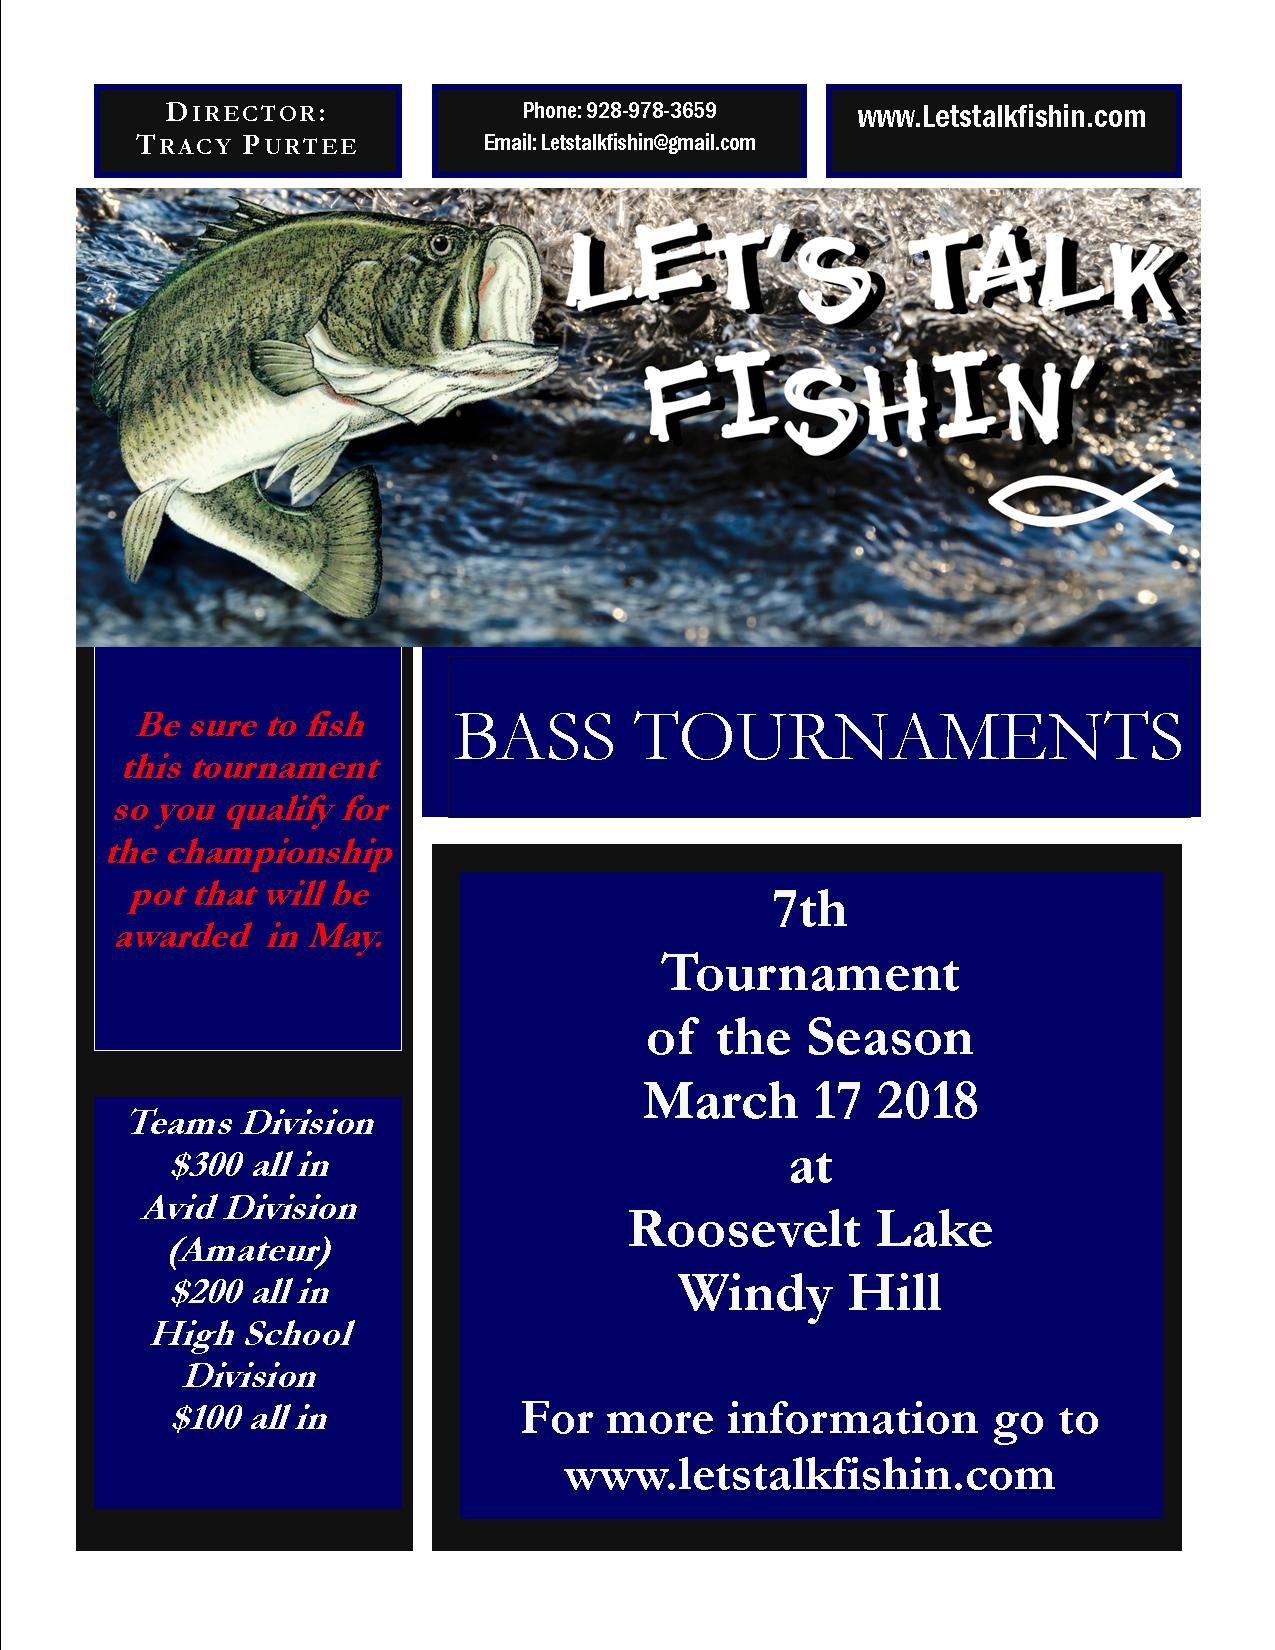 Click image for larger version  Name:7th Tournament.jpg Views:2394 Size:283.6 KB ID:96826